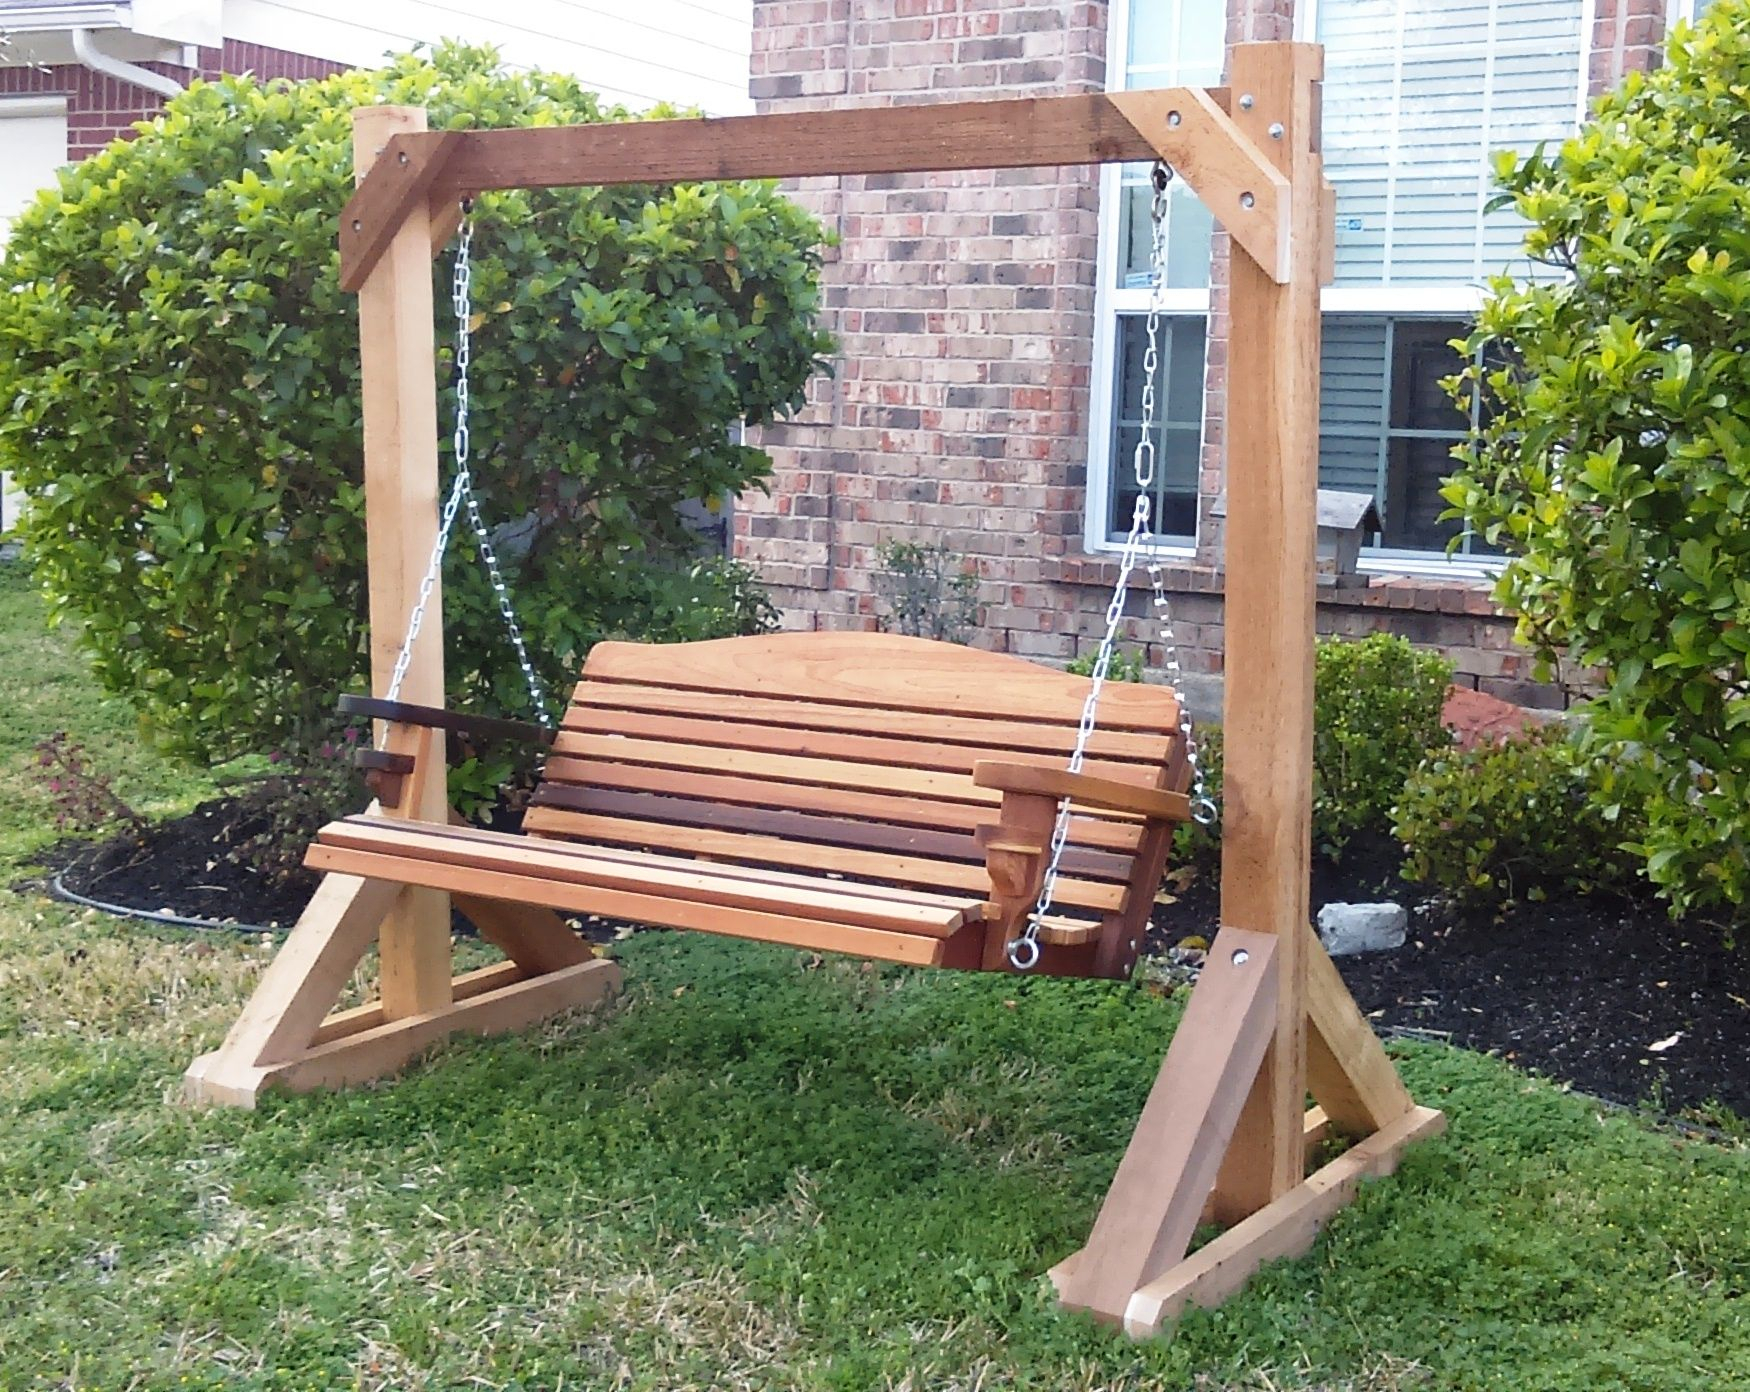 Wooden Swings | Patio Swing | Wooden Porch Swing | Porch Intended For Pergola Porch Swings With Stand (View 2 of 26)